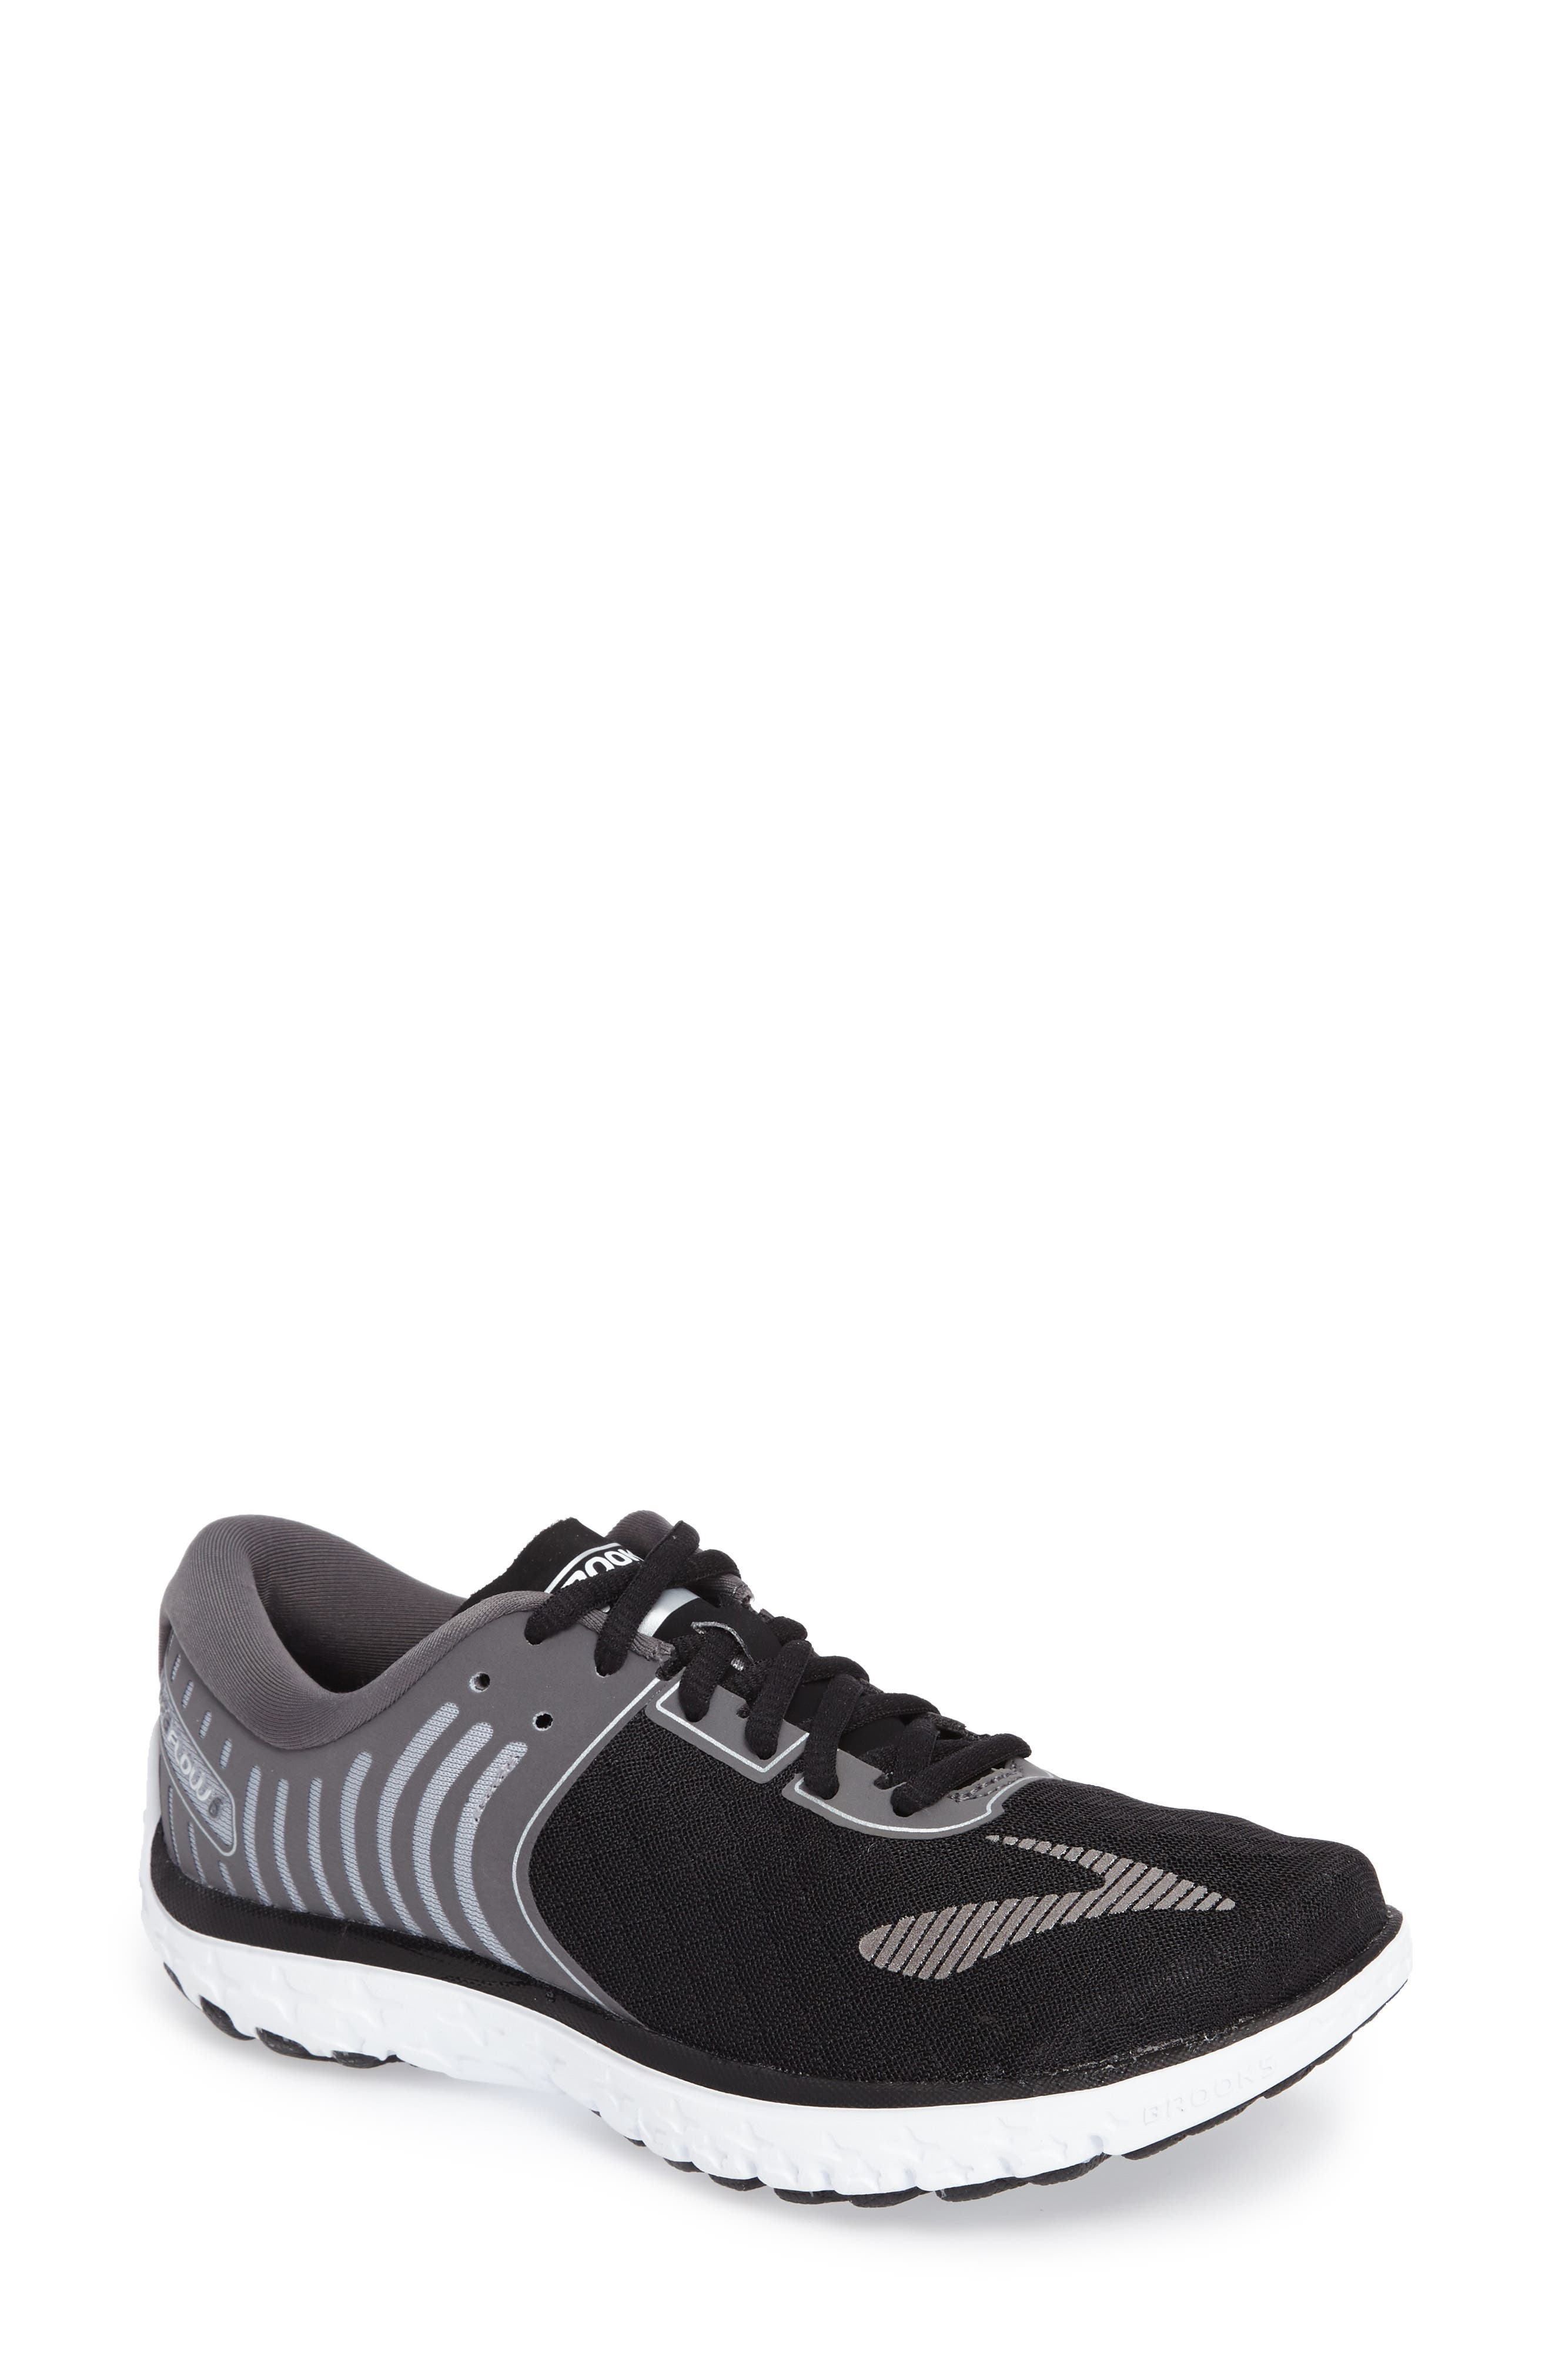 PureFlow 6 Running Shoe,                             Main thumbnail 1, color,                             Black/ Anthracite/ Silver